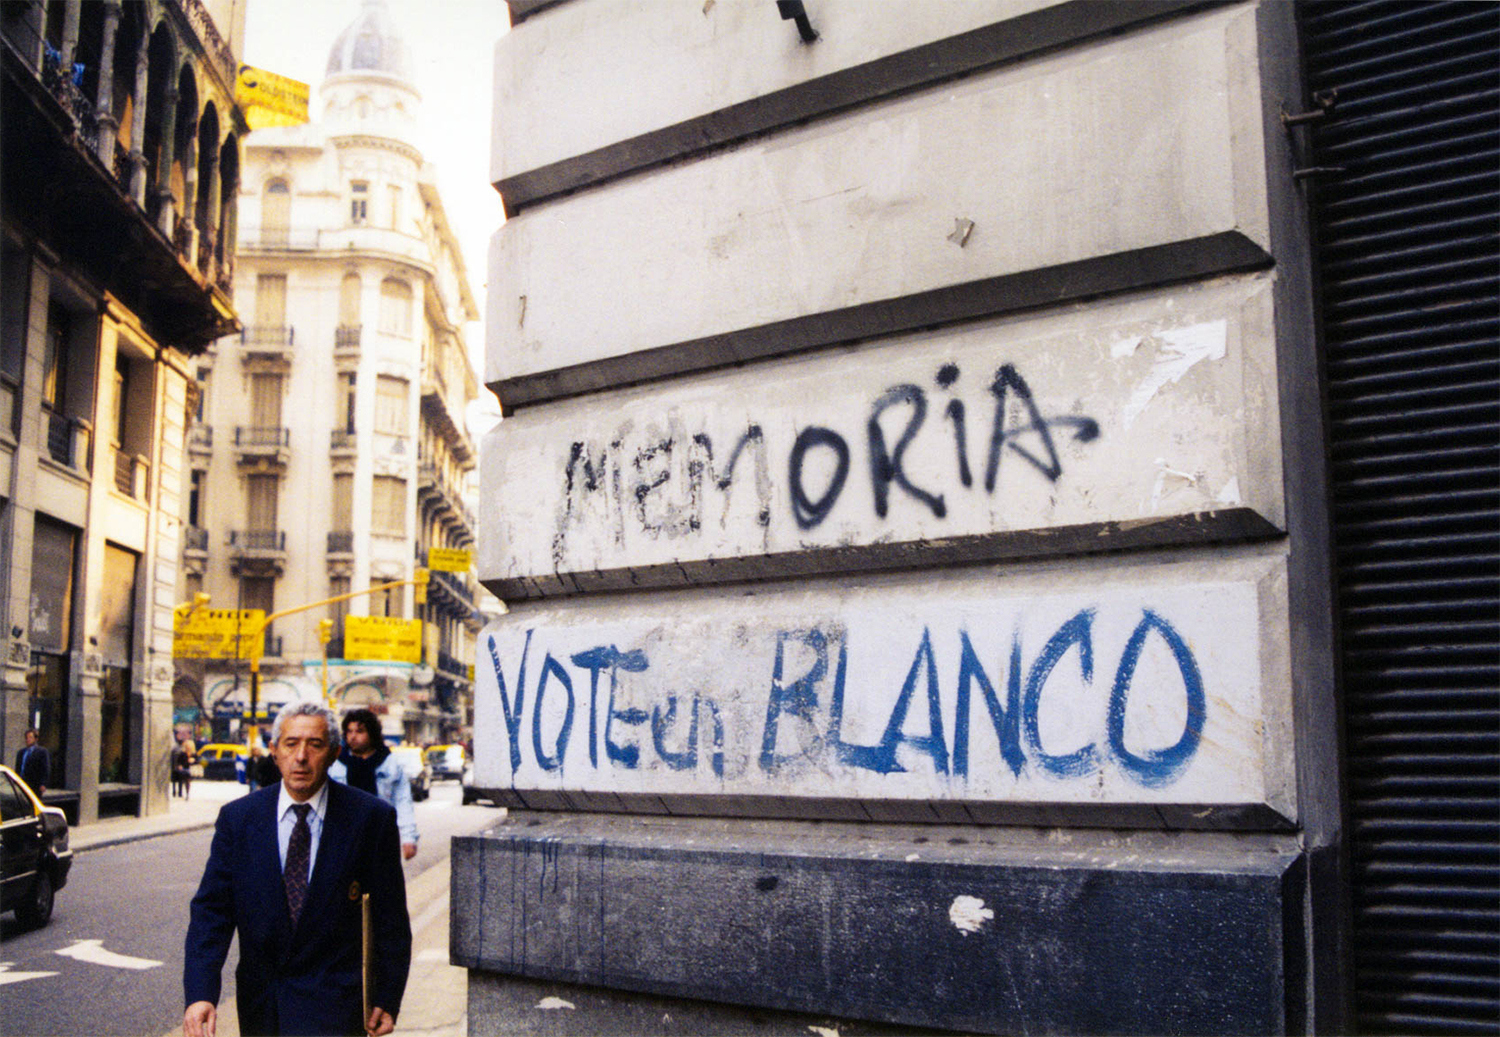 <p>'Memory' and 'vote blank' – two slogans summarising popular exasperation with the post-dictatorship Argentine political landscape. <br /></p>